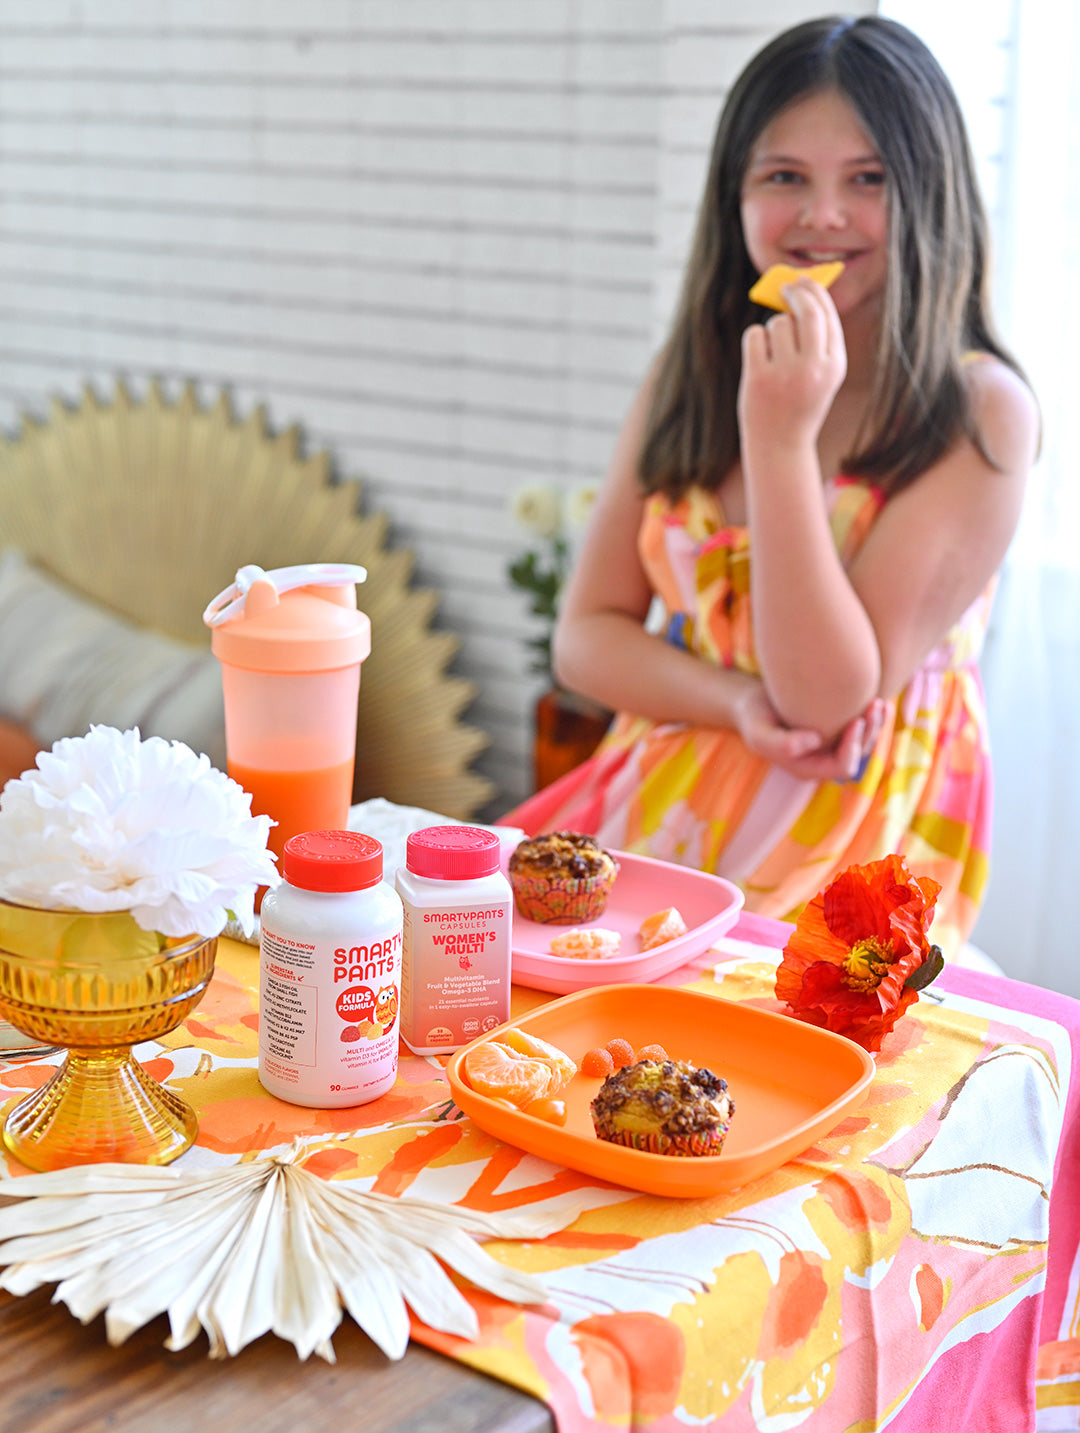 Girl sits at the breakfast table eating fruit and muffins. SmartyPants Women's Multi Capsule and SmartyPants Kids Formula are on the table.